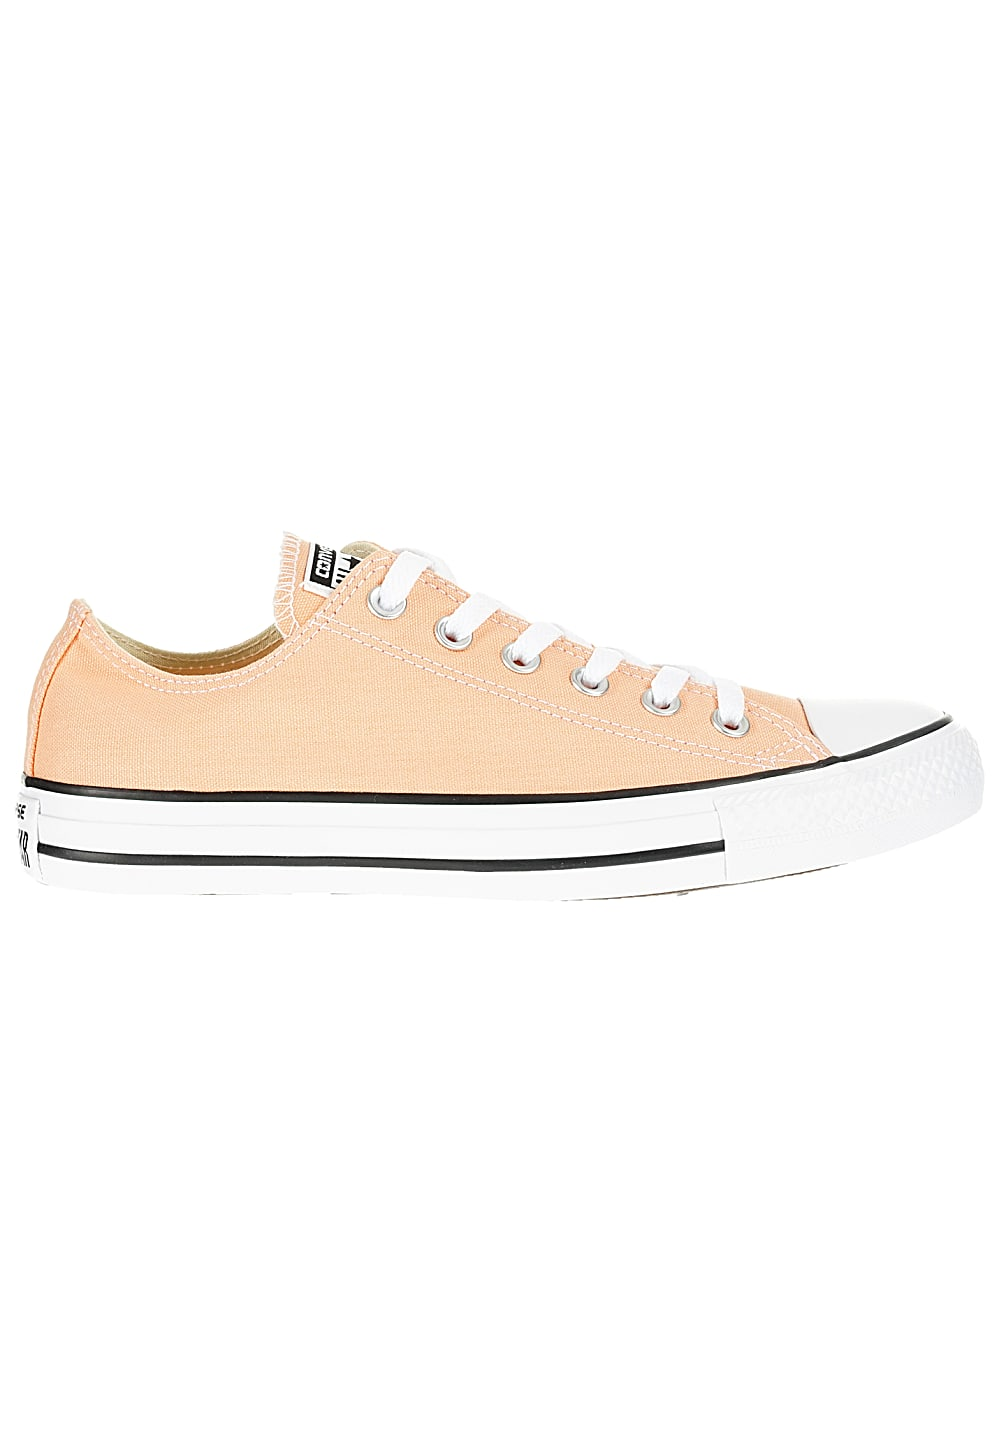 Converse Chuck Taylor All Star OX Sneaker Orange